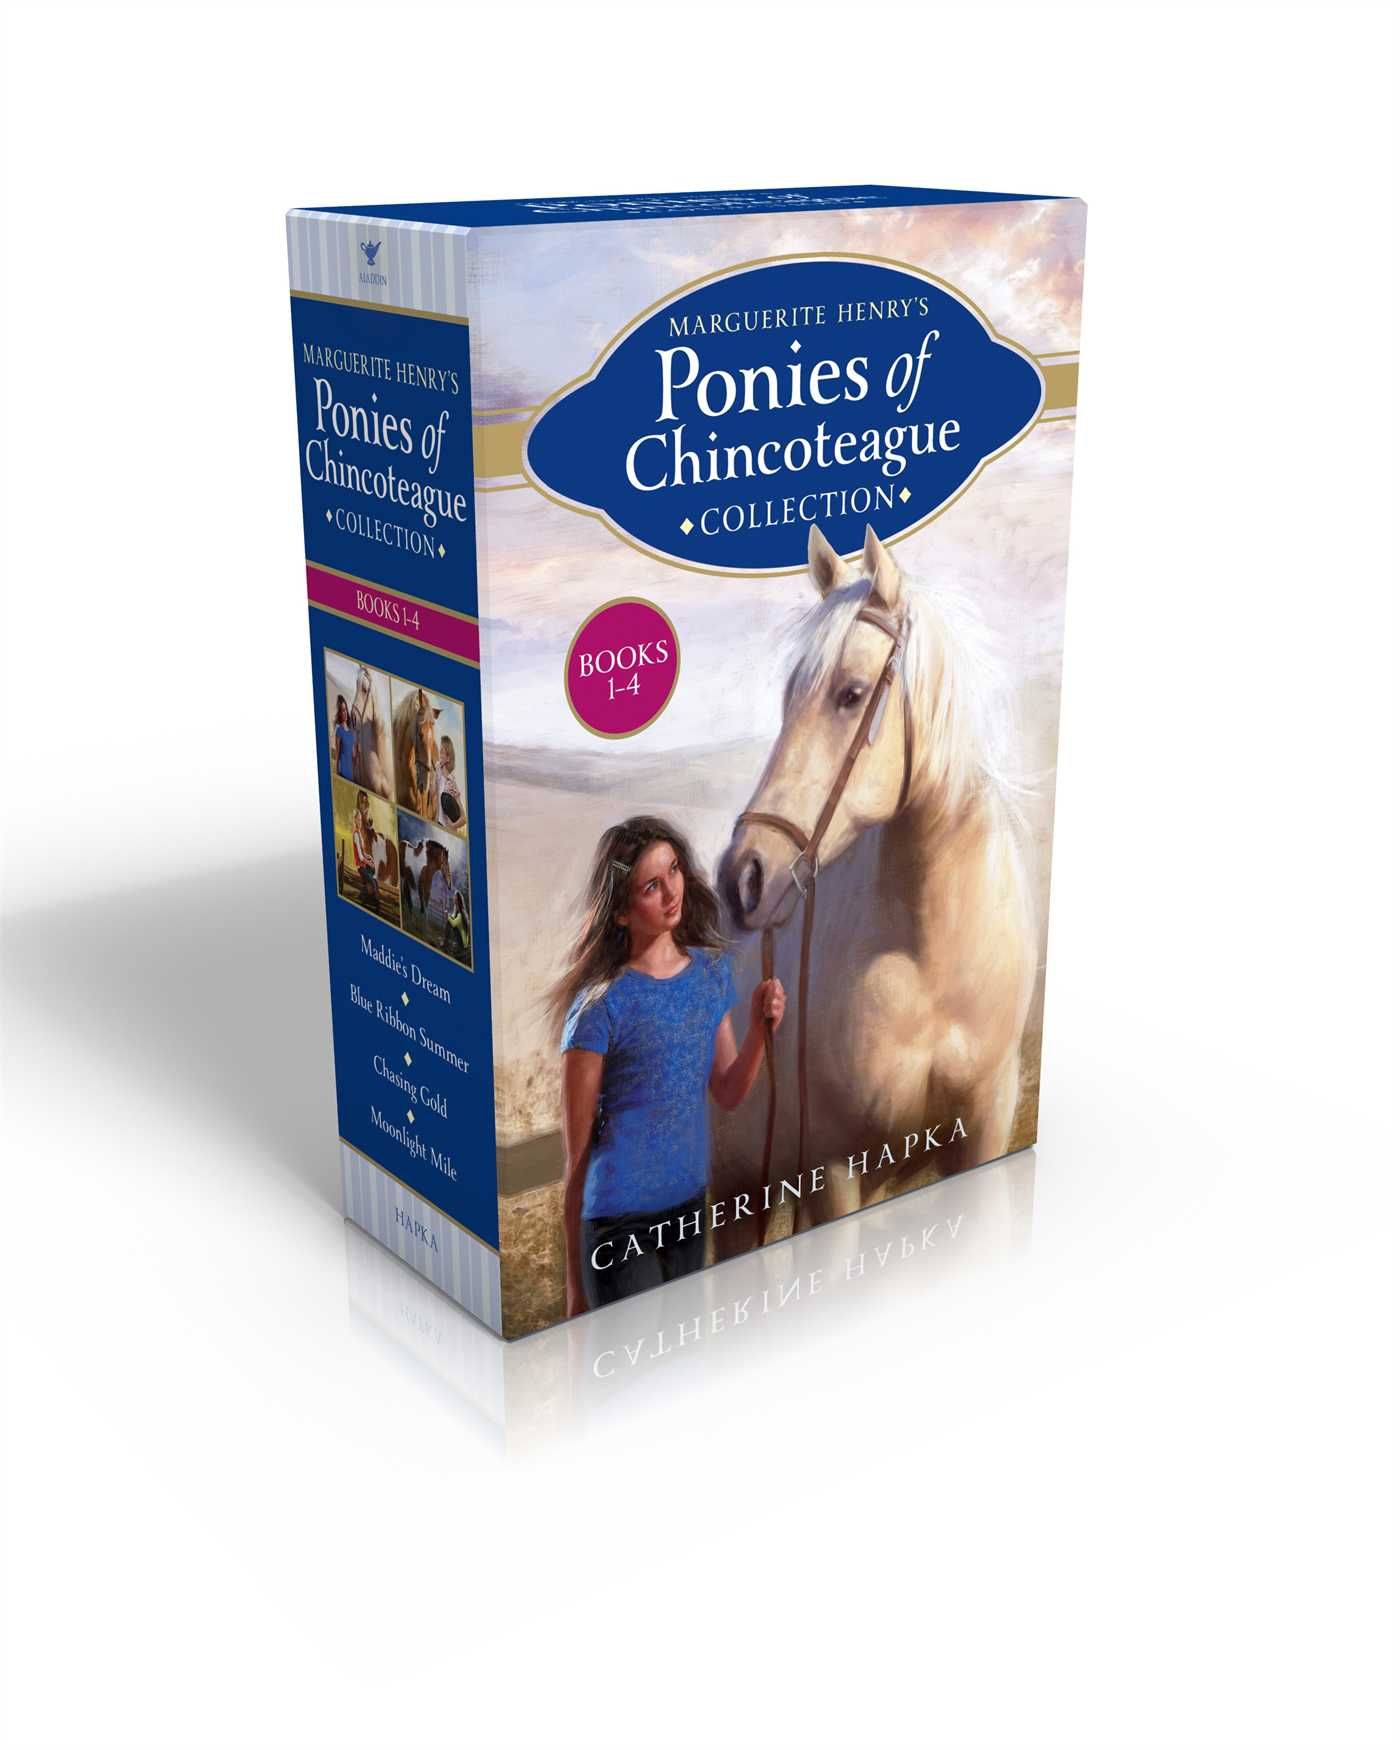 Marguerite-henrys-ponies-of-chincoteague-books-9781481425728_hr